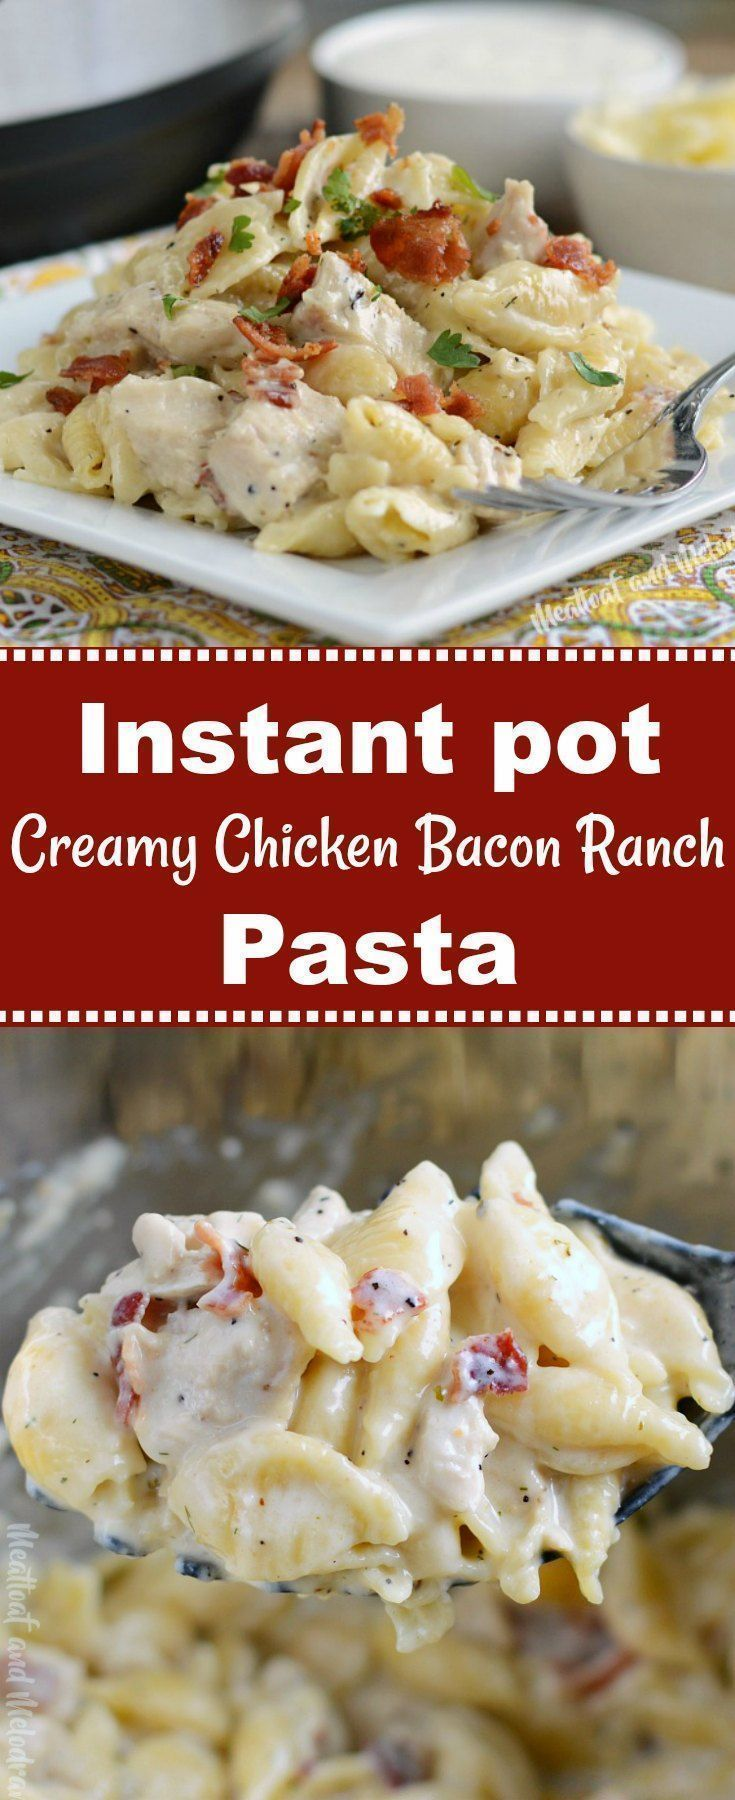 Instant Pot Cremige Chicken Bacon Ranch Pasta